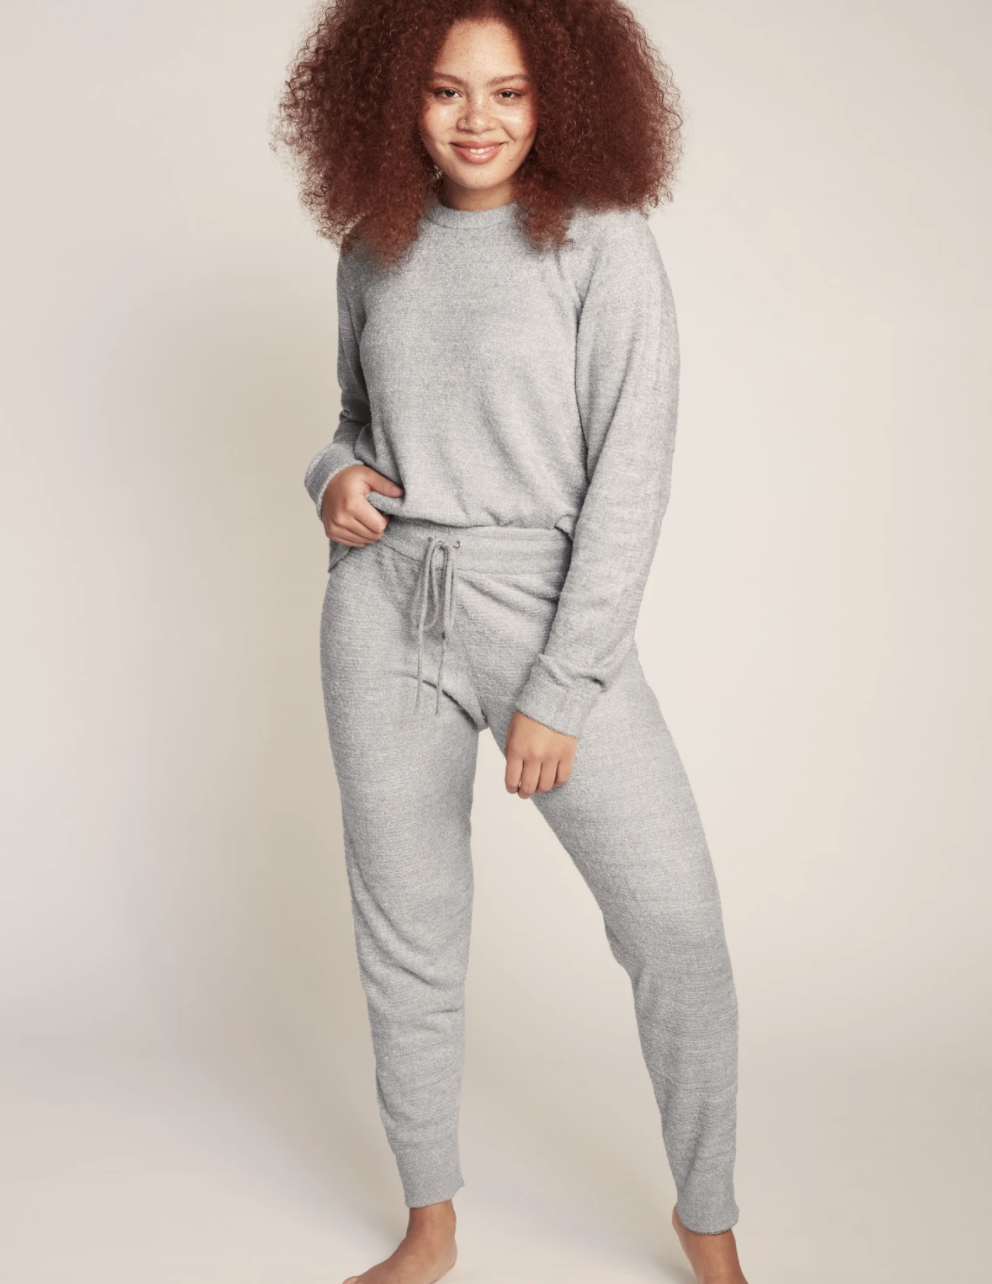 Model wearing the crewneck sweater and track pants in light grey